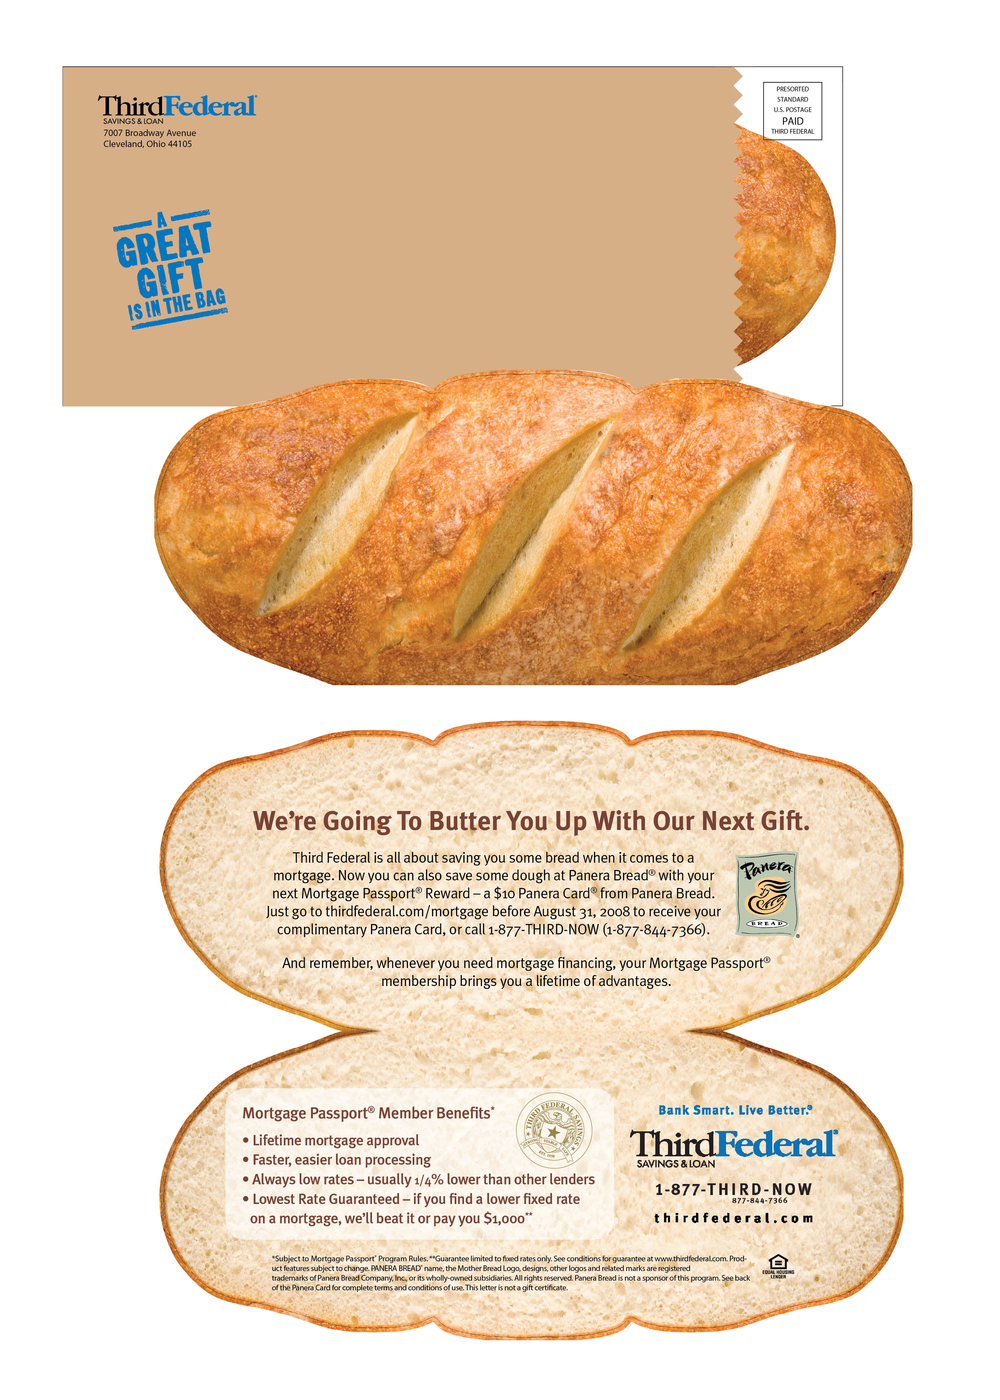 Direct Mail for bank giving a Panera Gift Card to their preferred customers. Had a 90% customer fulfillment rate.